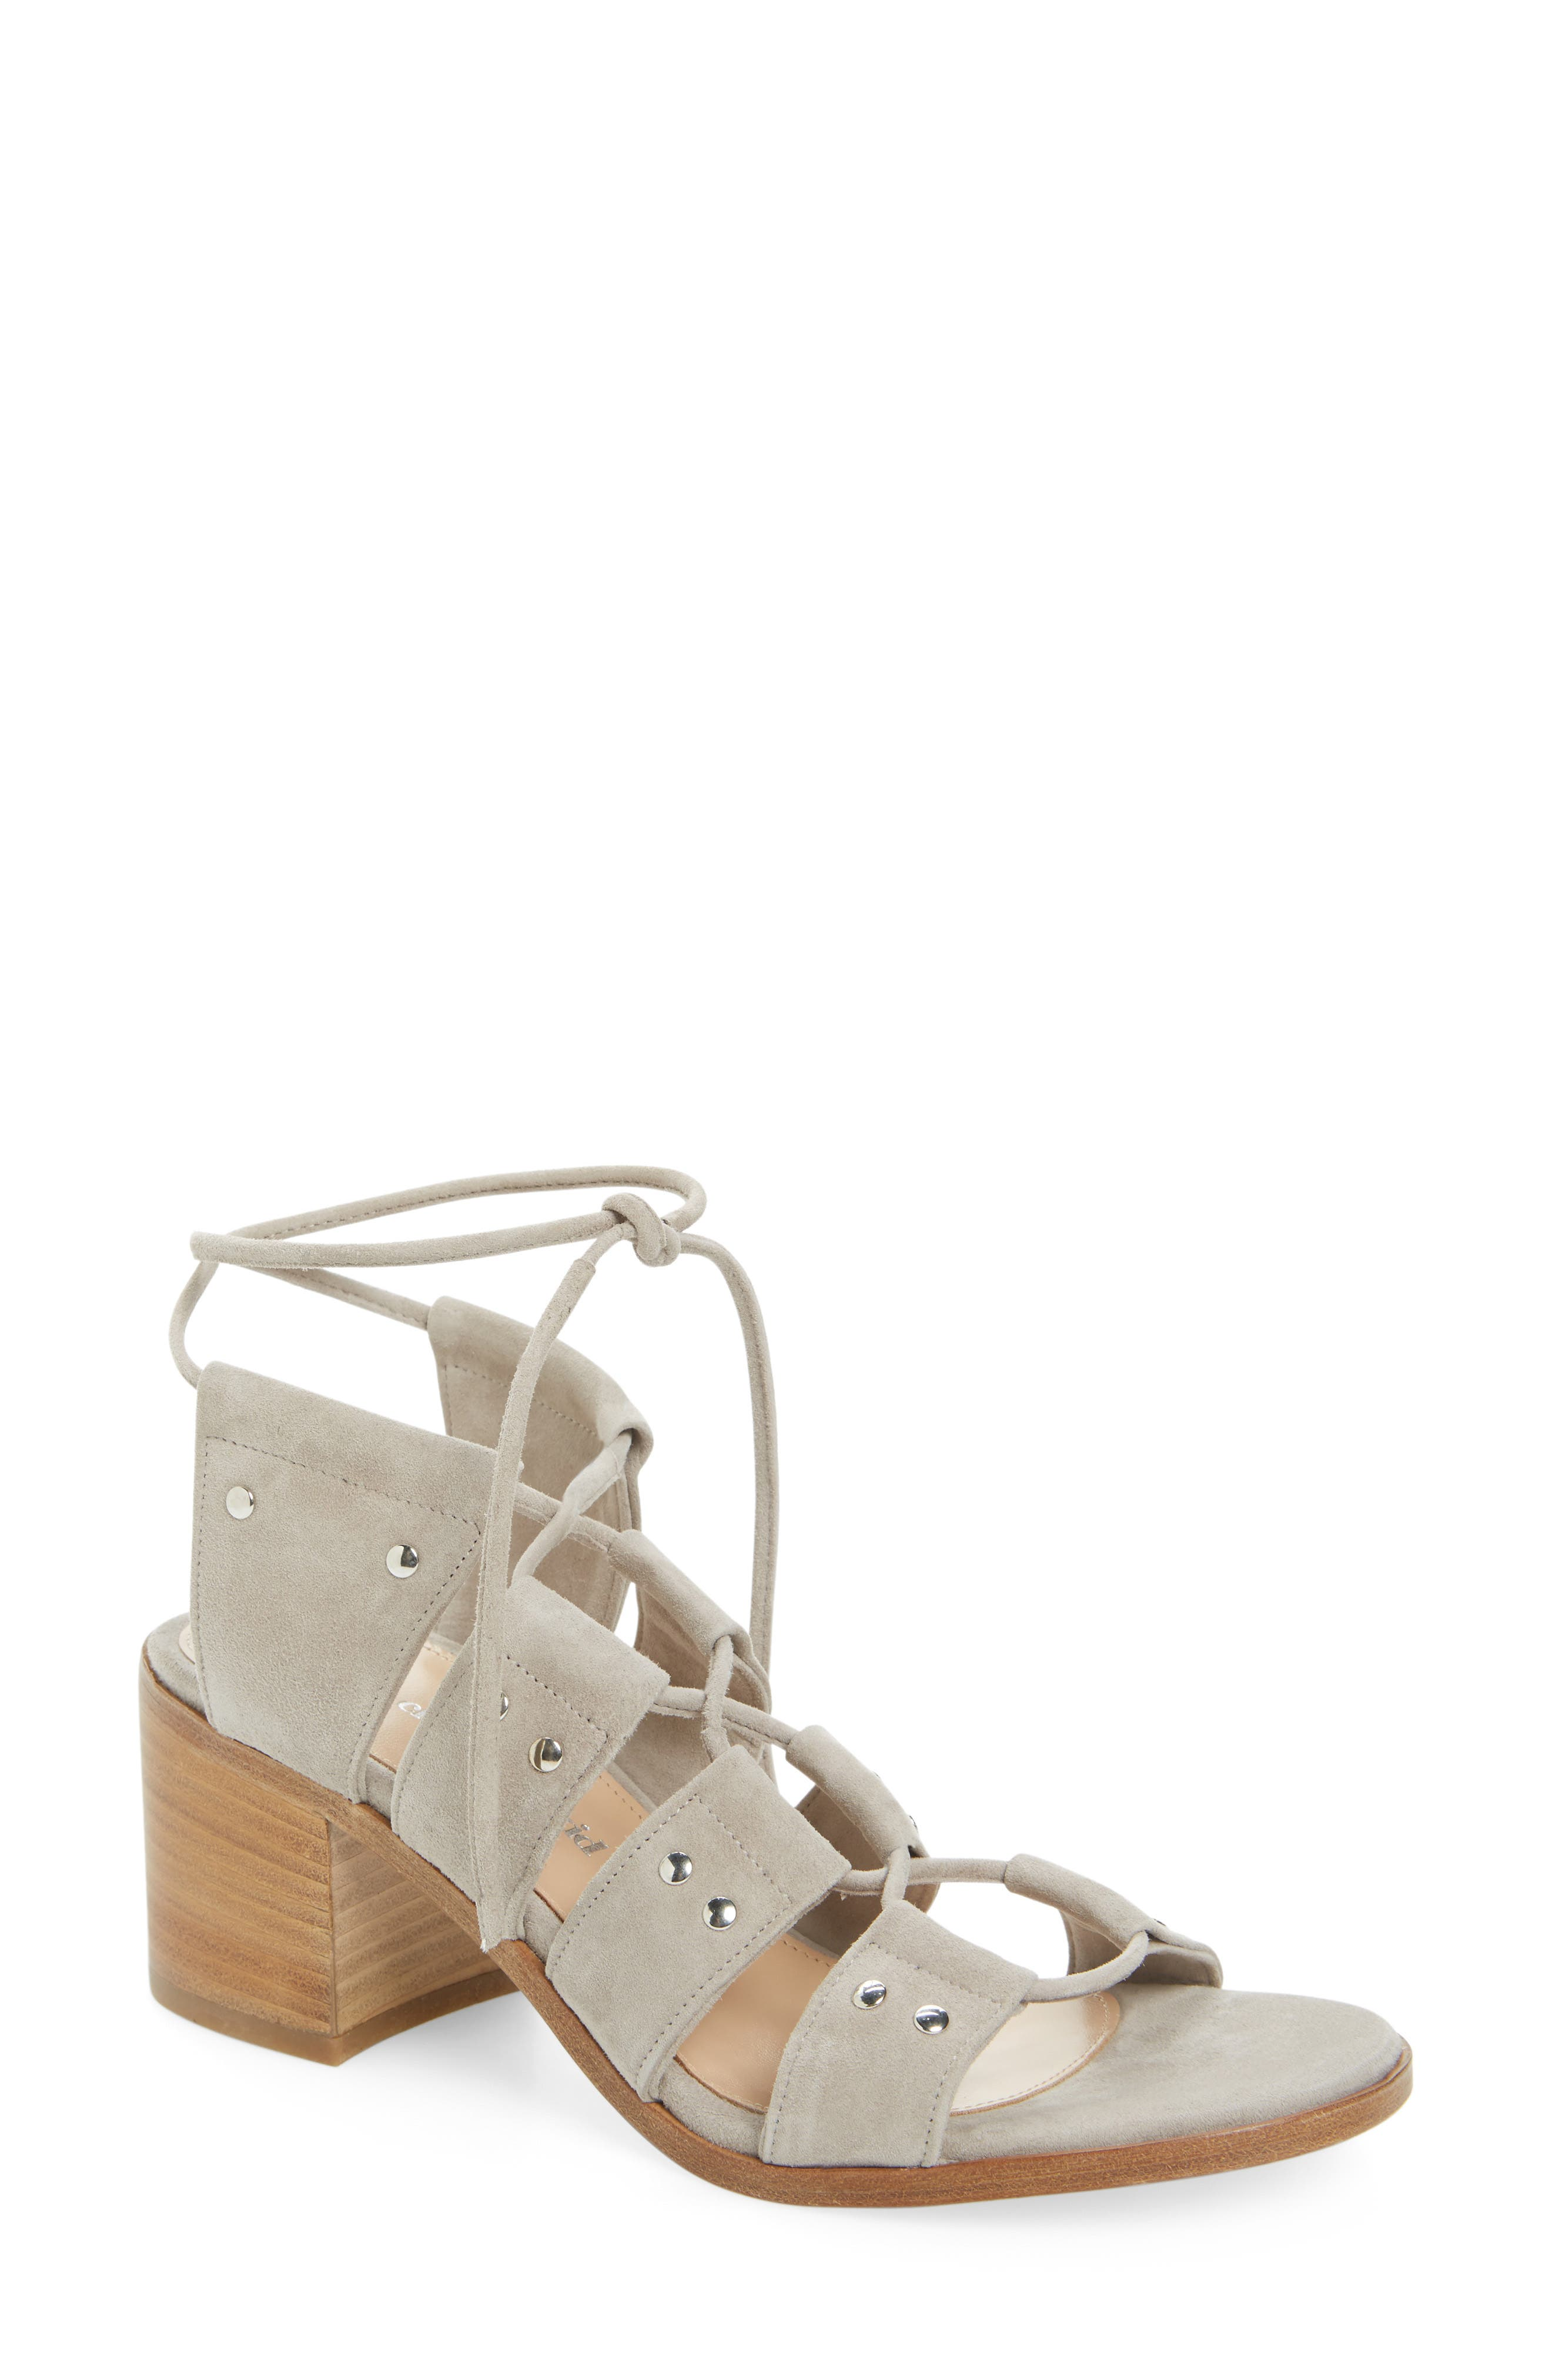 Birch Block Heel Sandal,                         Main,                         color, 017